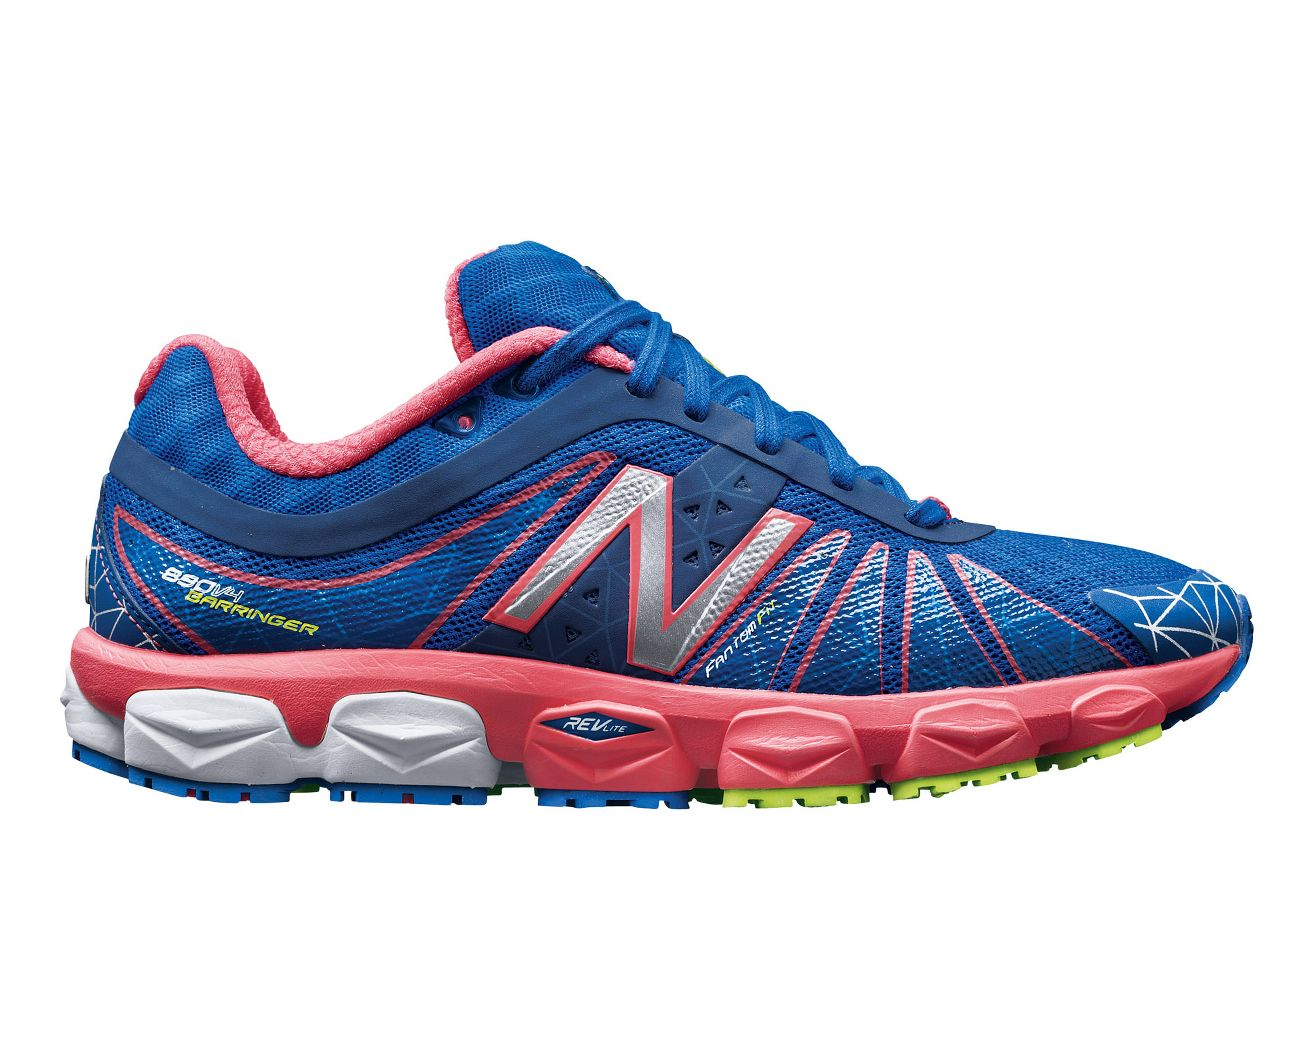 Womens New Balance 890v4 Running Shoe at Road Runner Sports